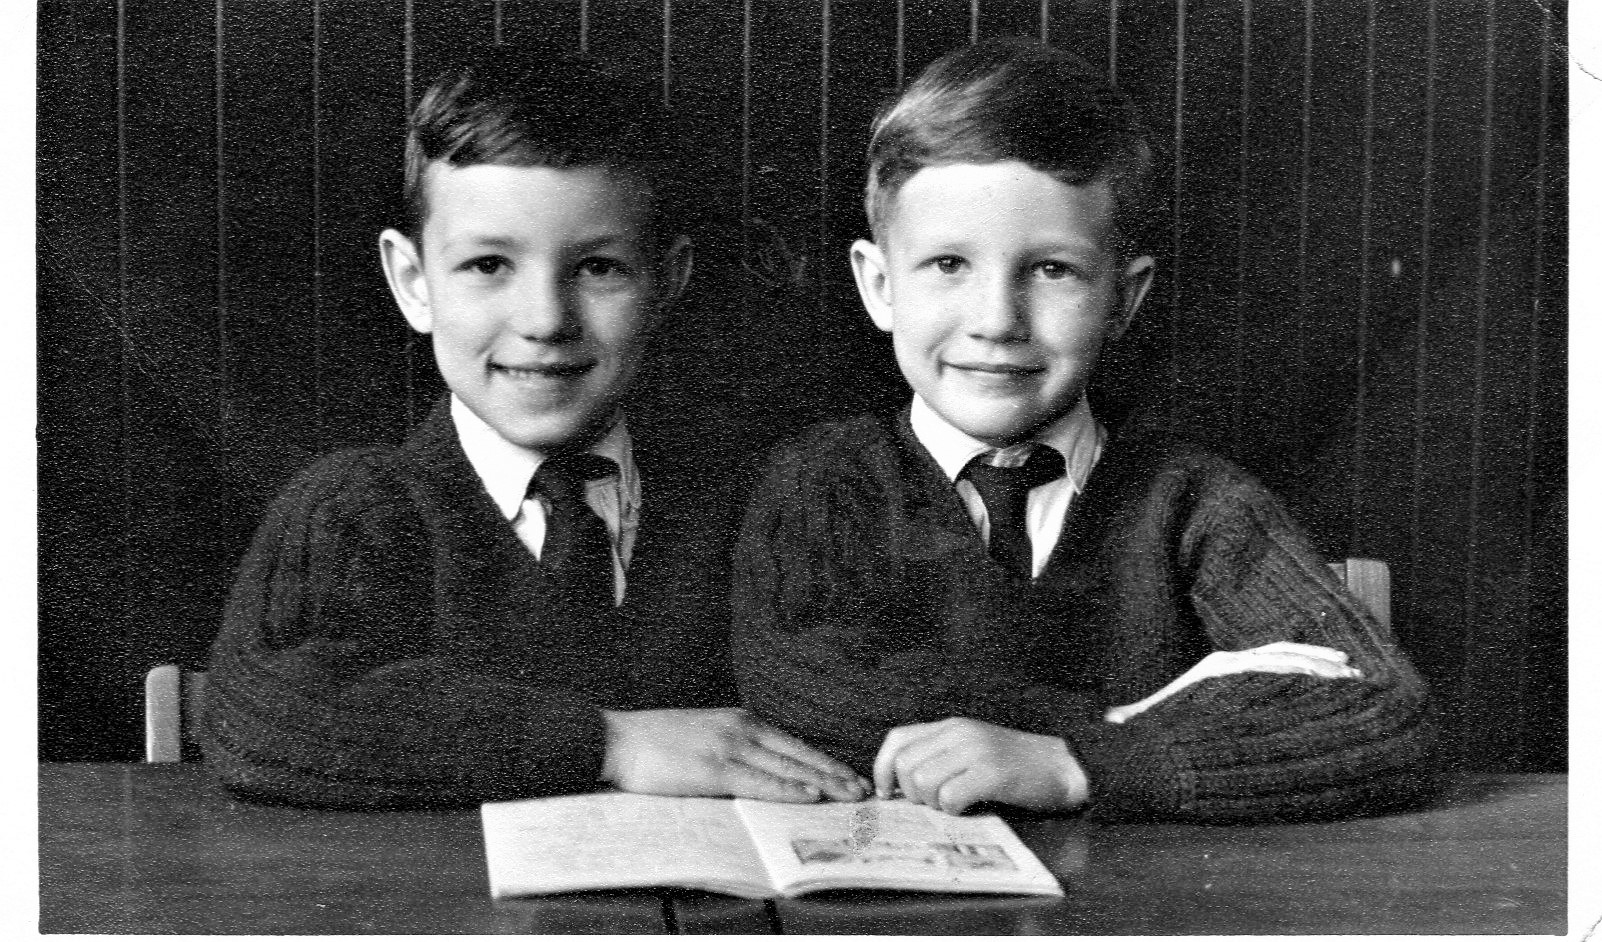 David Kelly and brother Steve, All Saints Primary, Gresford around 1962.